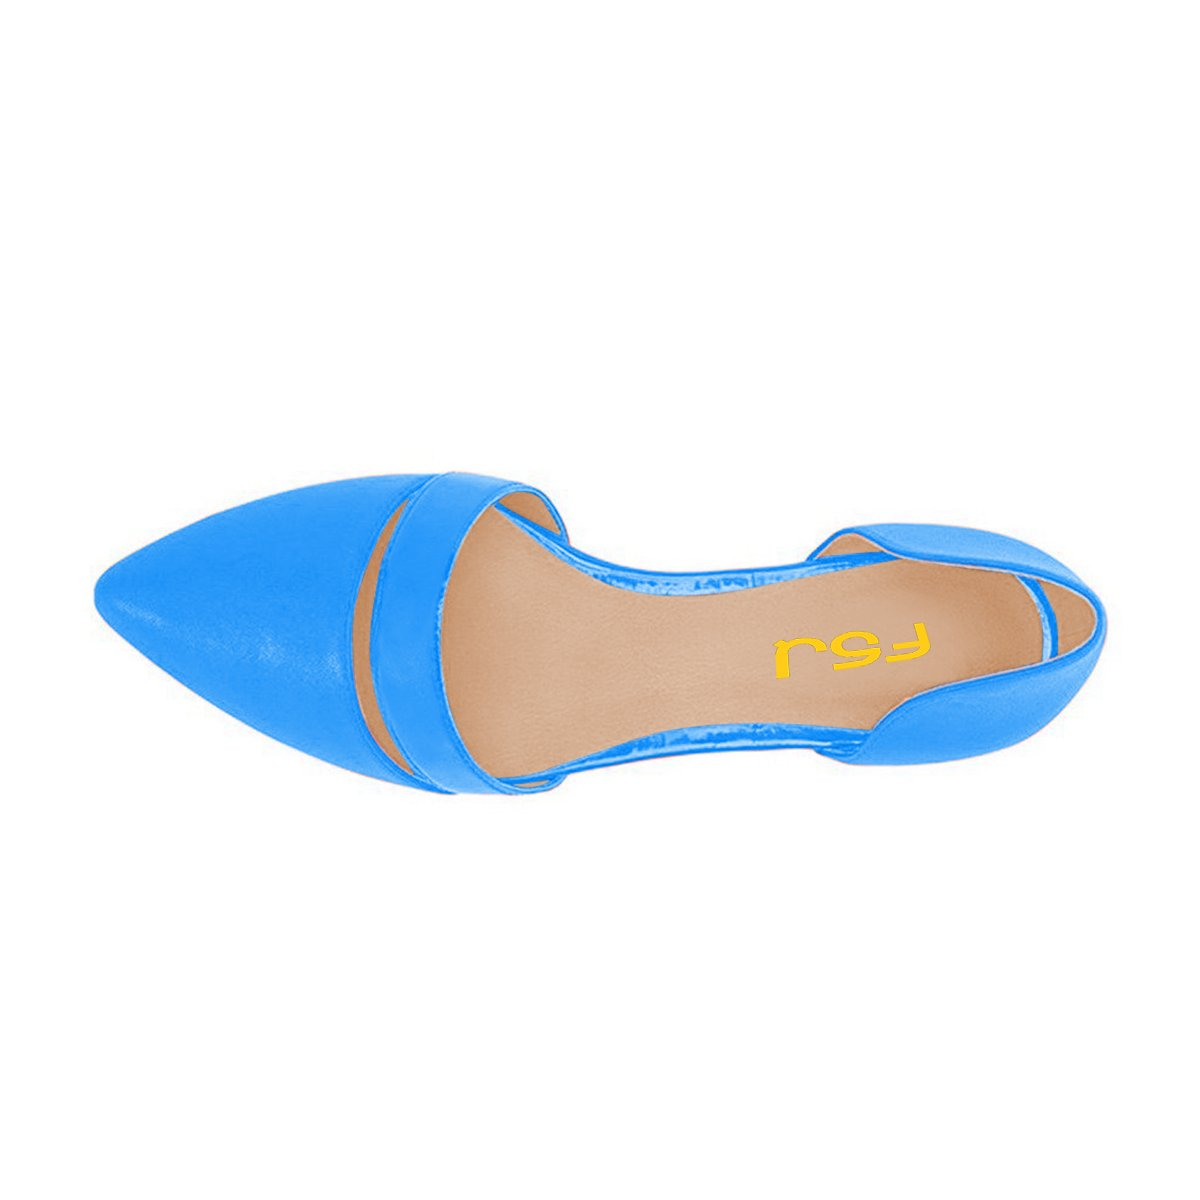 FSJ Women Cute D'Orsay Ballet Flats for Comfort Dress Pointed Toe Low Heels Dress Comfort Shoes Size 4-15 US B06Y4PBTZF 9 B(M) US|Blue 2ddd53